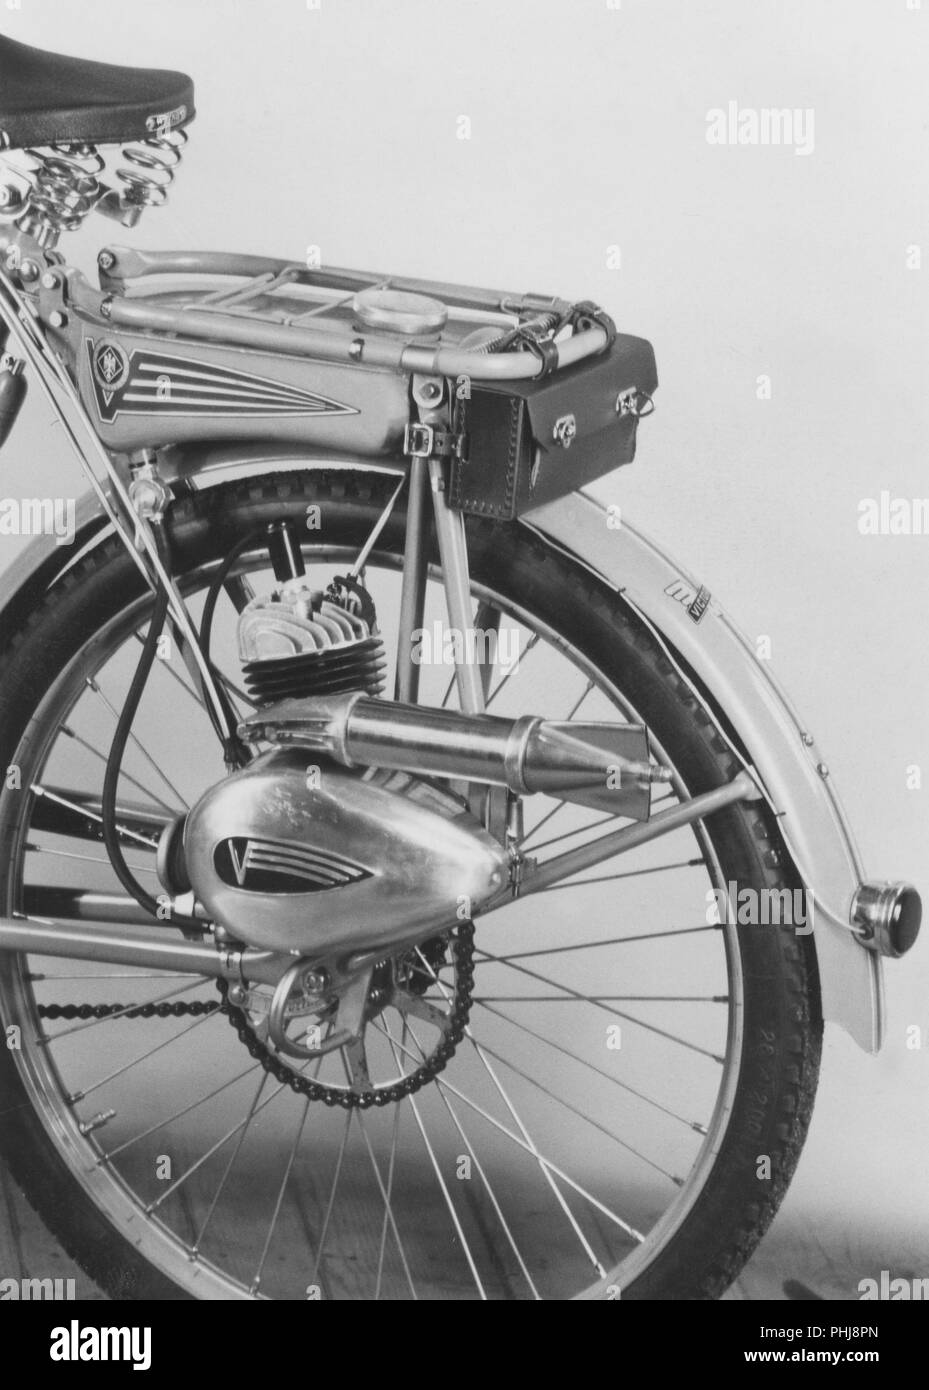 1950s bicycle extra  The german moped and motor manufacturer